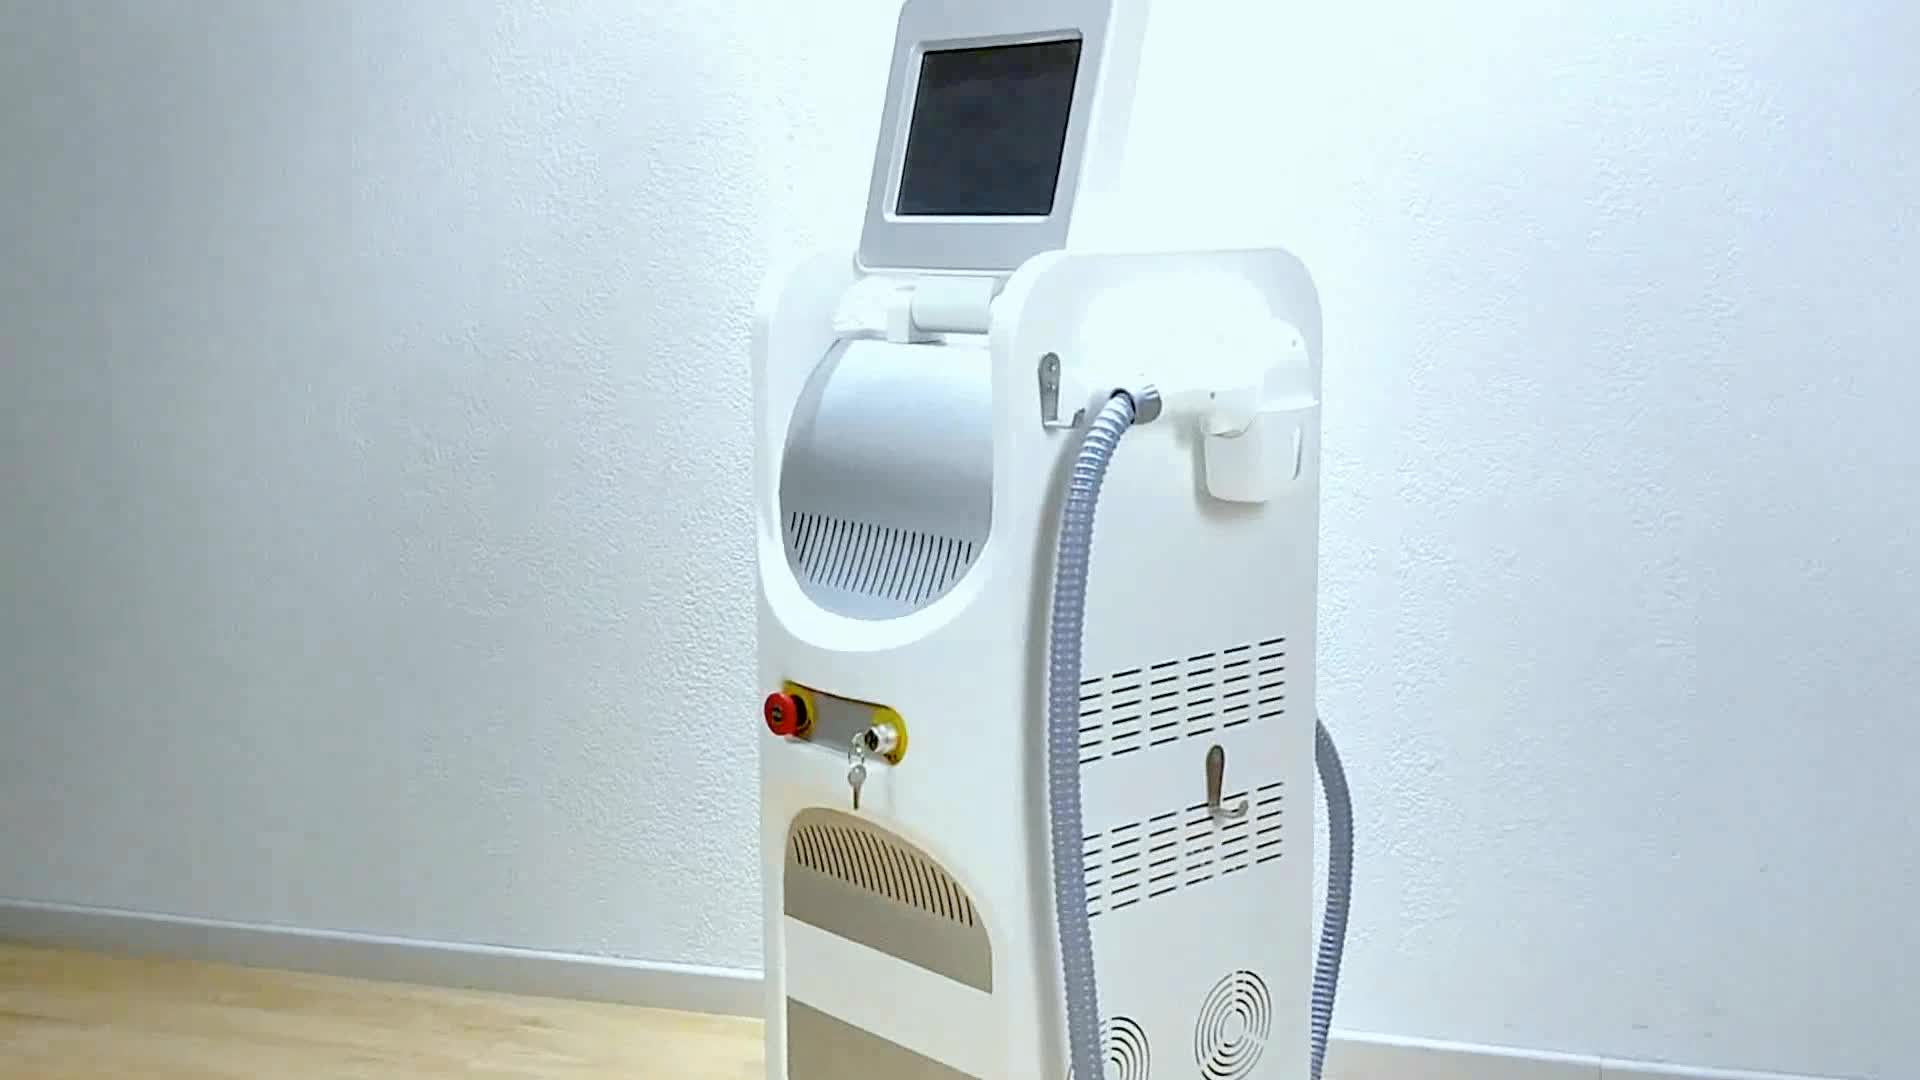 Professional Laser Diode 755 808 1064Nm Alexandrite Laser 755Nm 3 Wavelength Diode Laser Hair Removal Machine Price